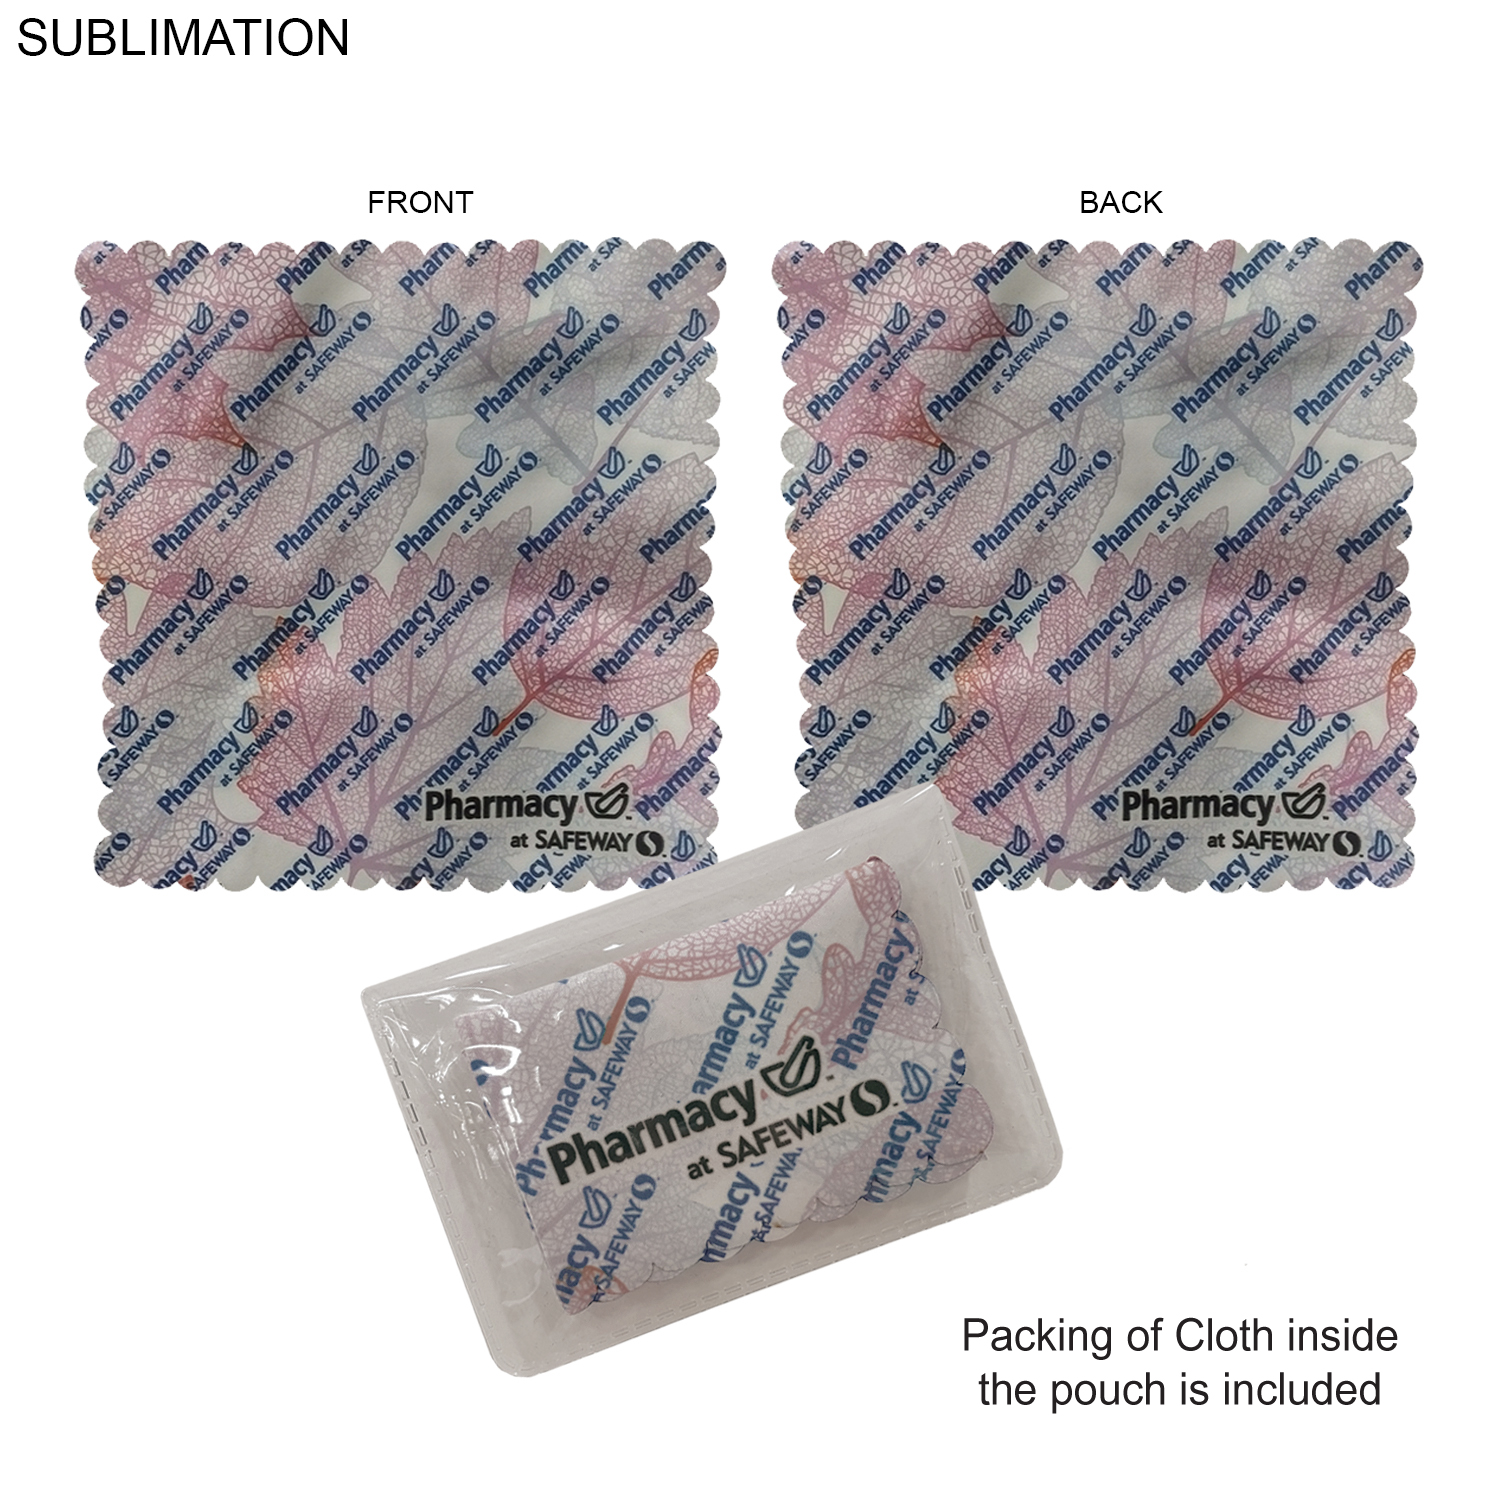 6x6 Cleaning Cloth with Vinyl Pouch SU550-3, Full Colour Imprint